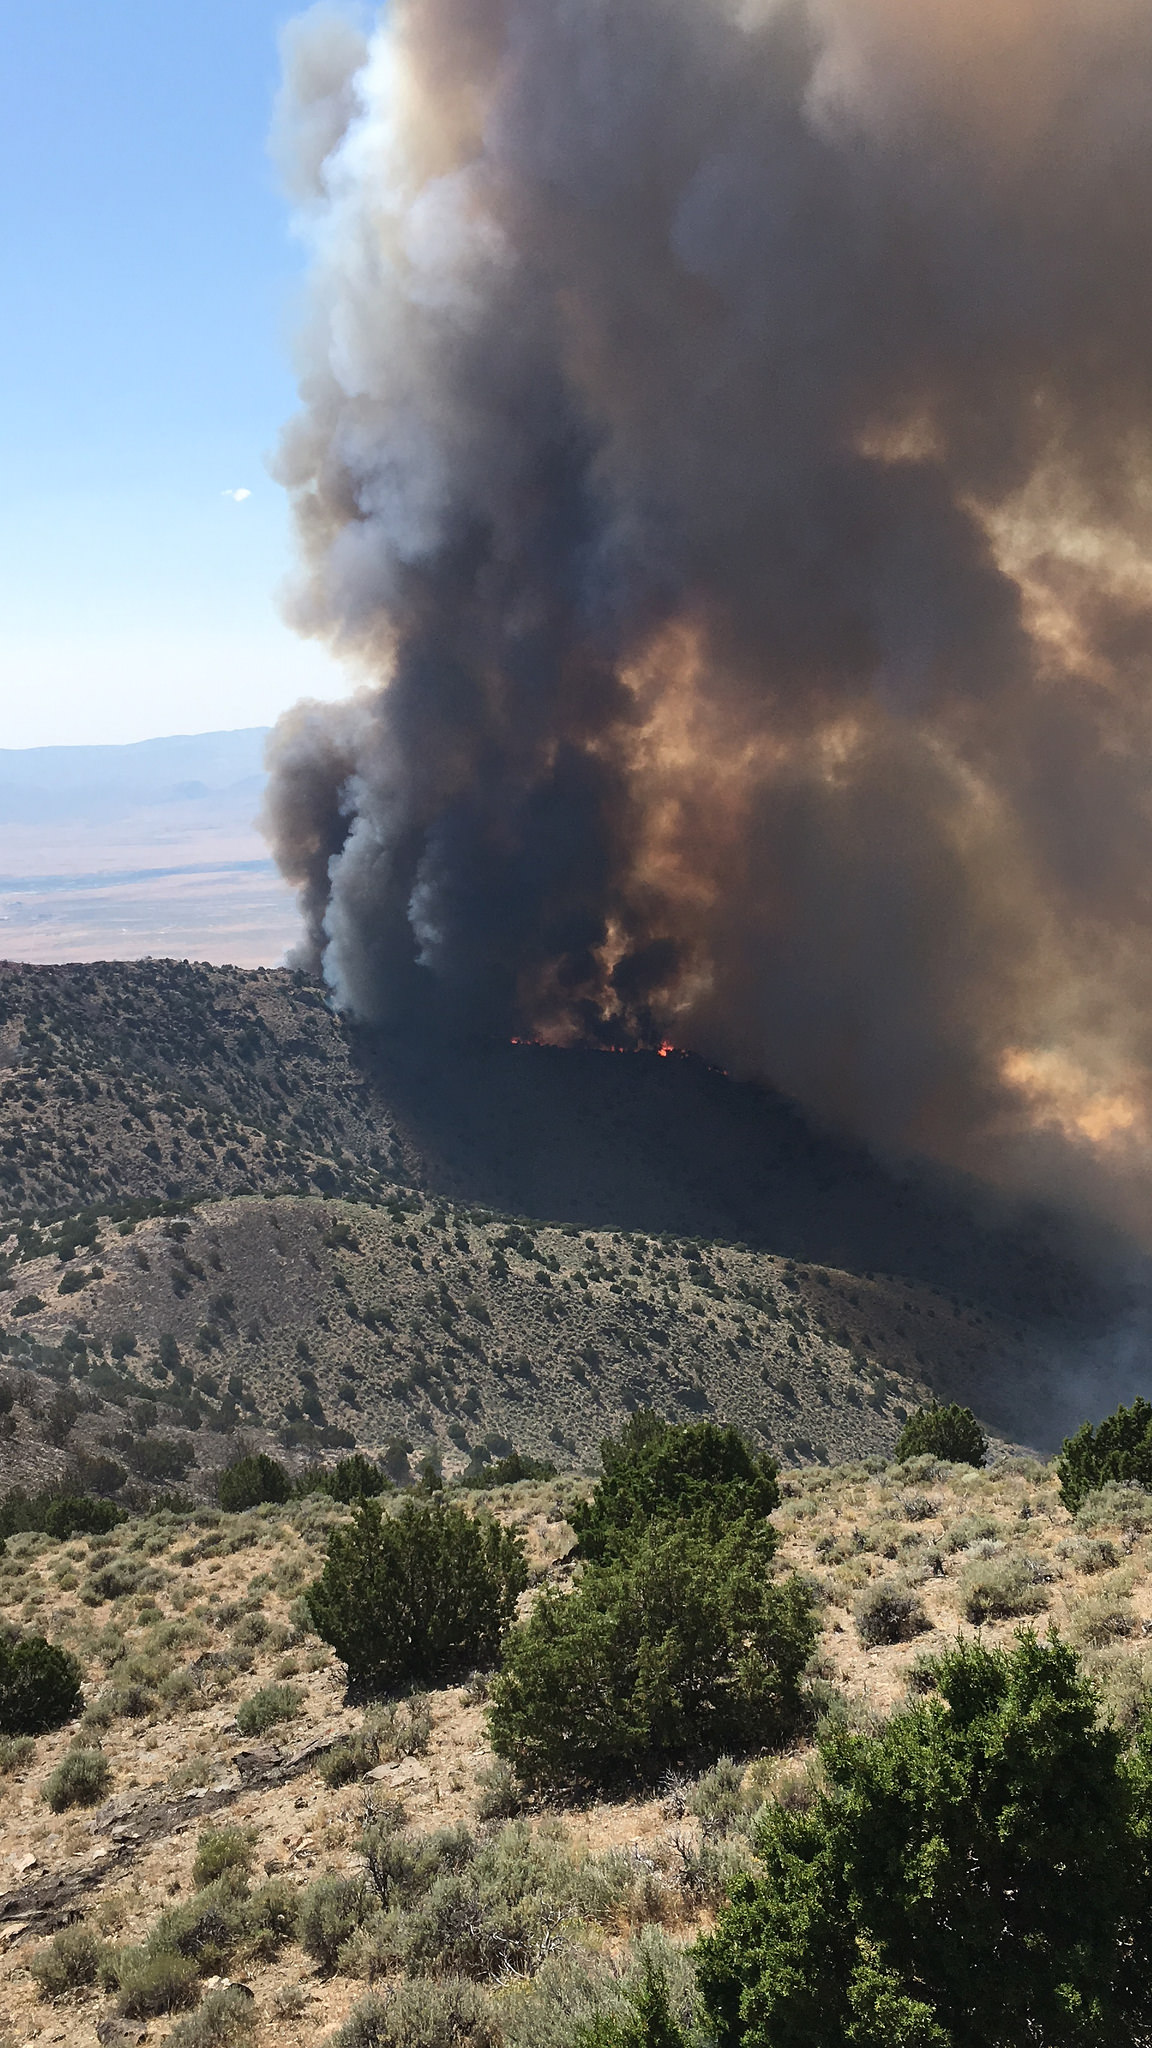 limerick-fire-that-started-july-3-2017-15-miles-northeast-of-lovelock-nevada_35616004382_o